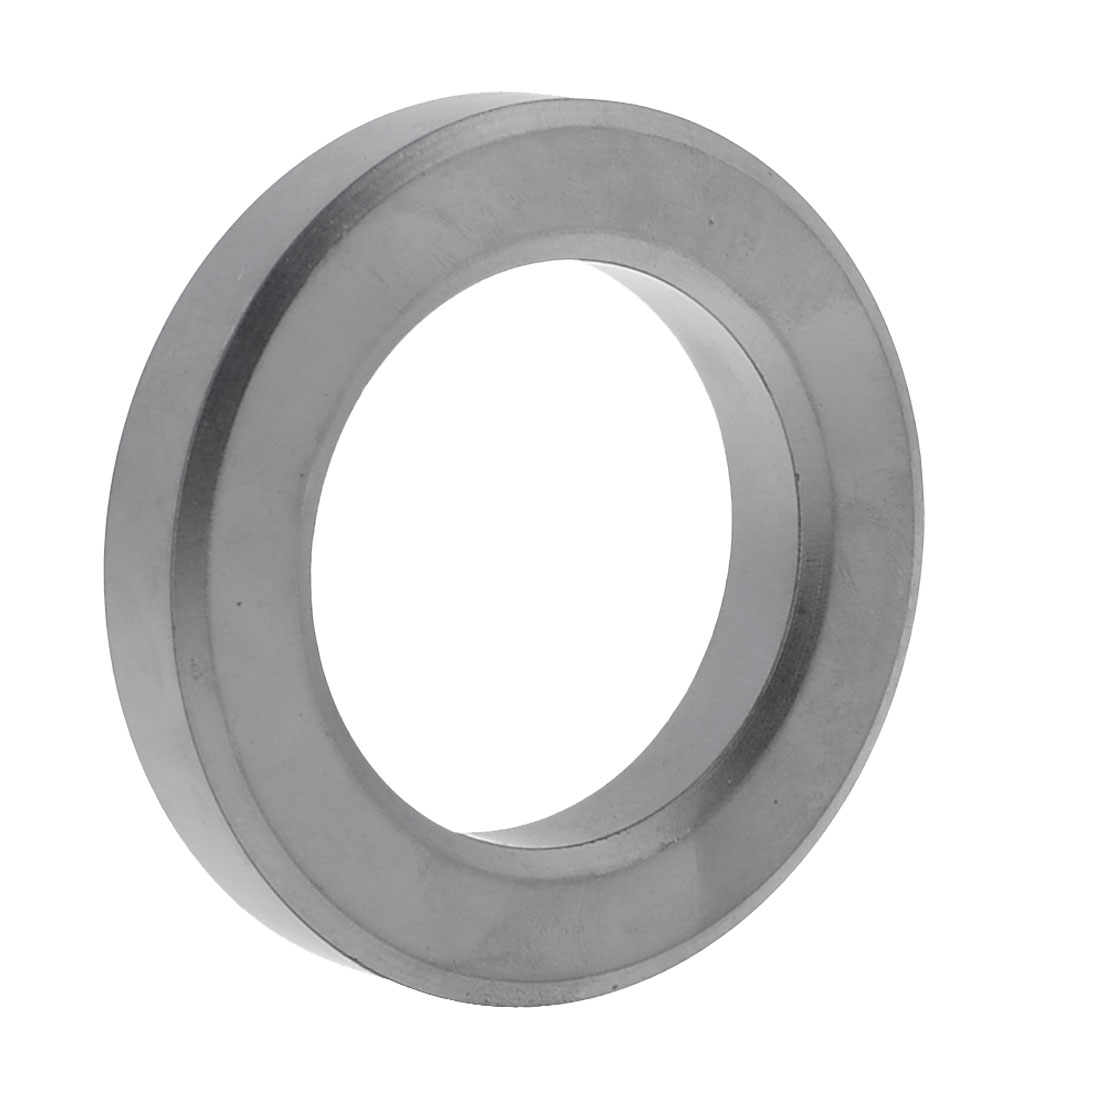 Gray-Iron-85mm-Outside-Diameter-Power-Ferrite-Toroid-Core-T85